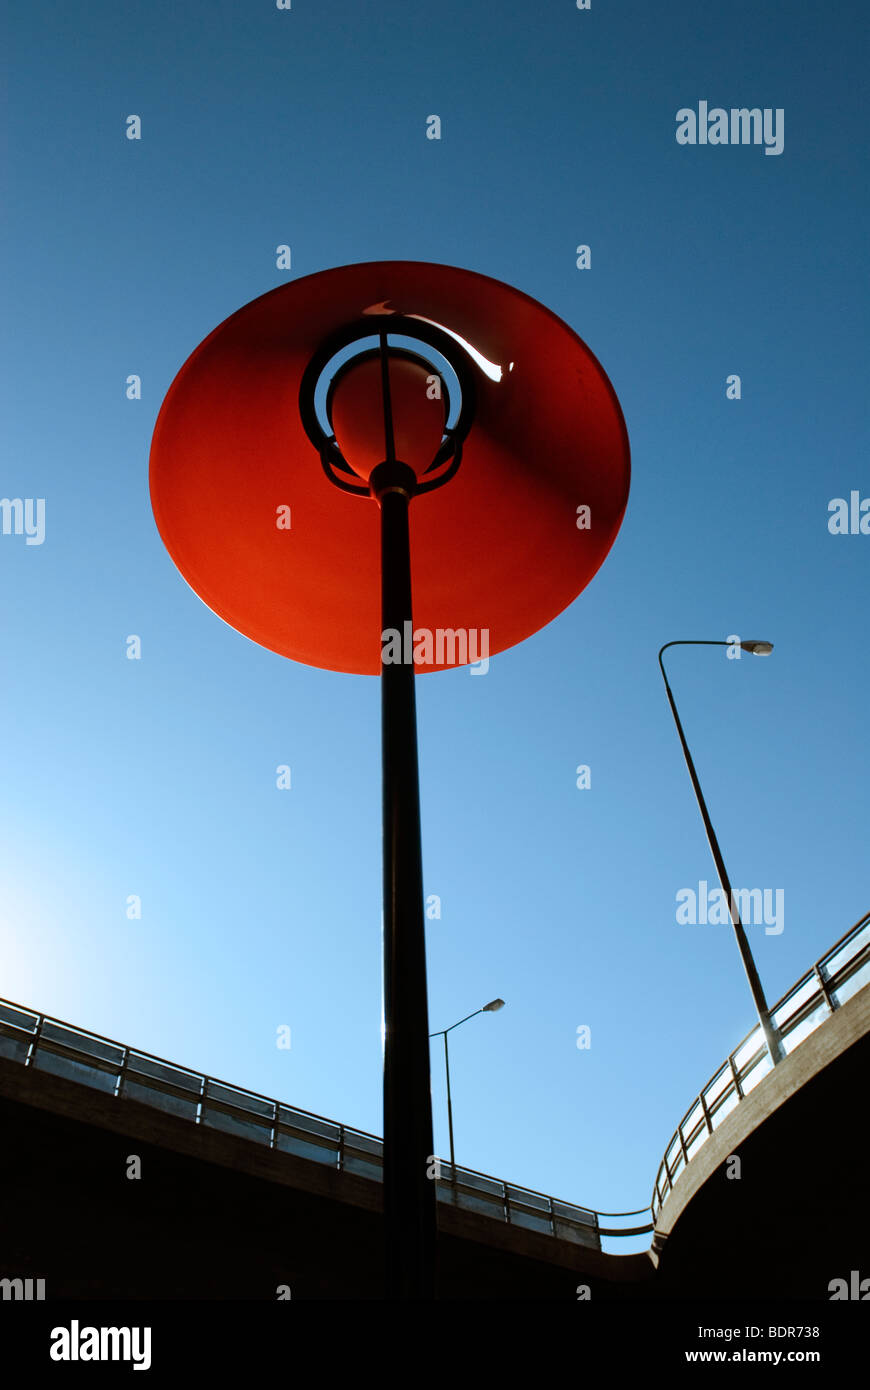 A red outdoor lamp by a viaduct Stockholm Sweden. - Stock Image